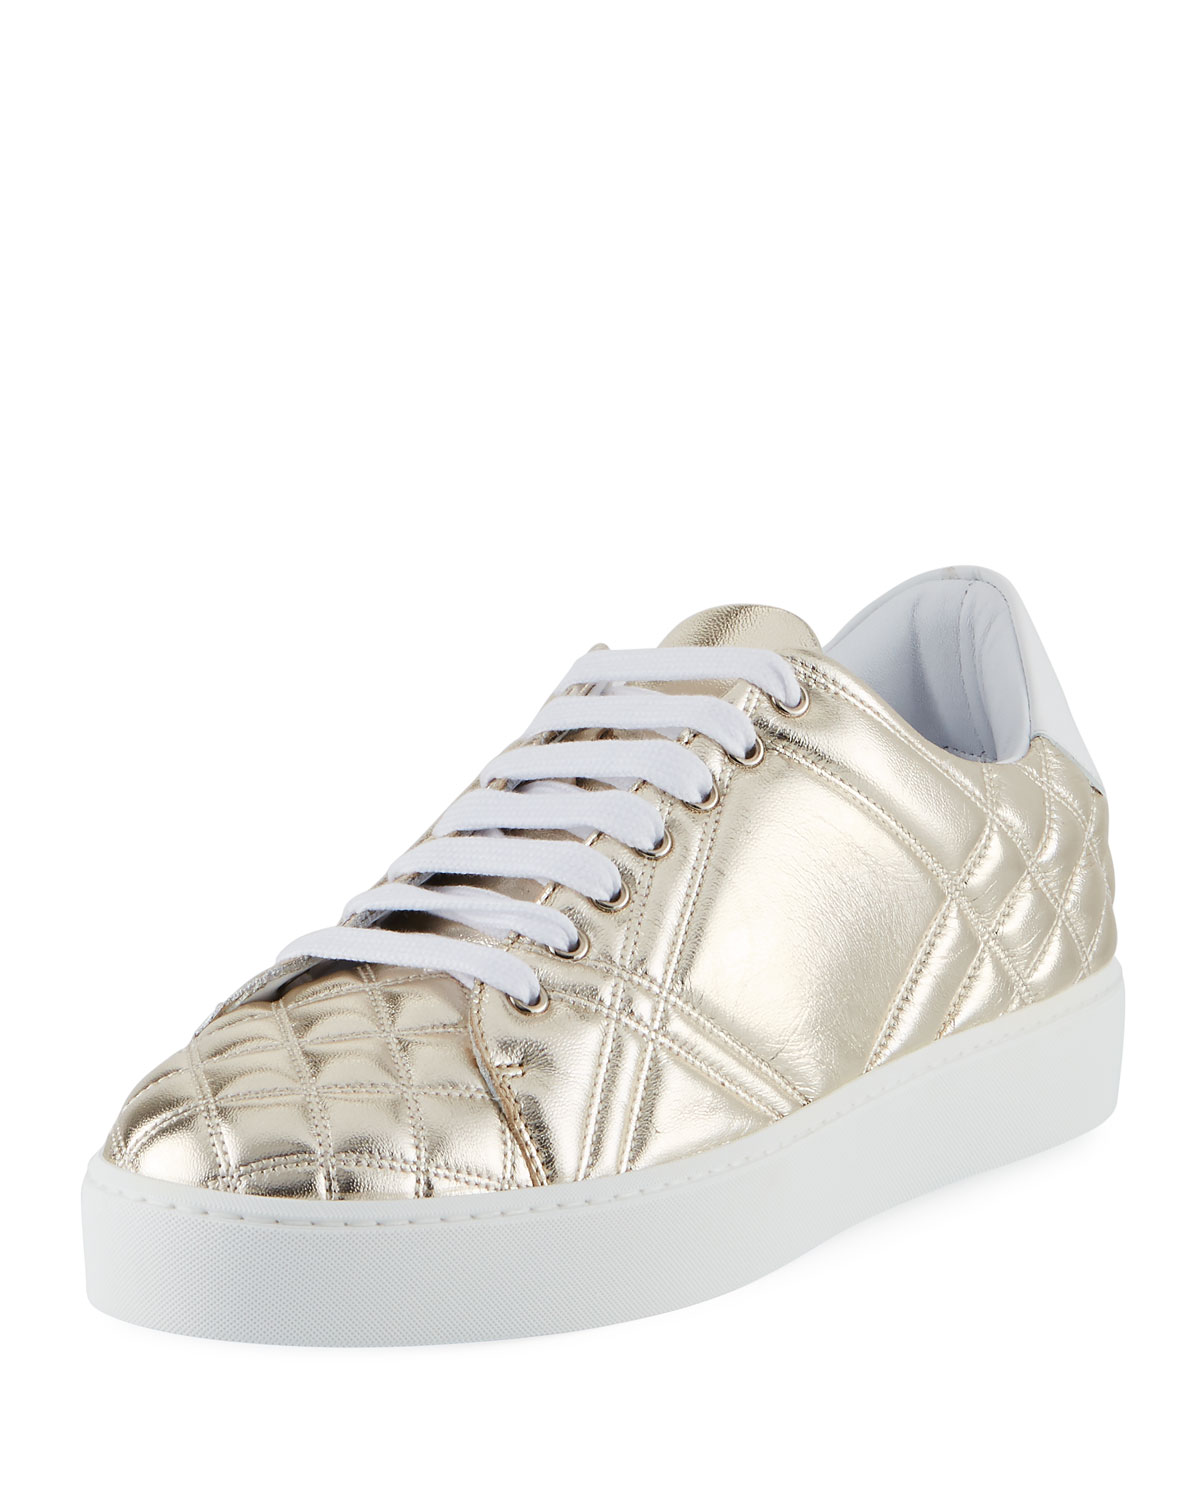 Quilted Metallic Leather Sneakers - Gold Burberry XVBFH0GFT